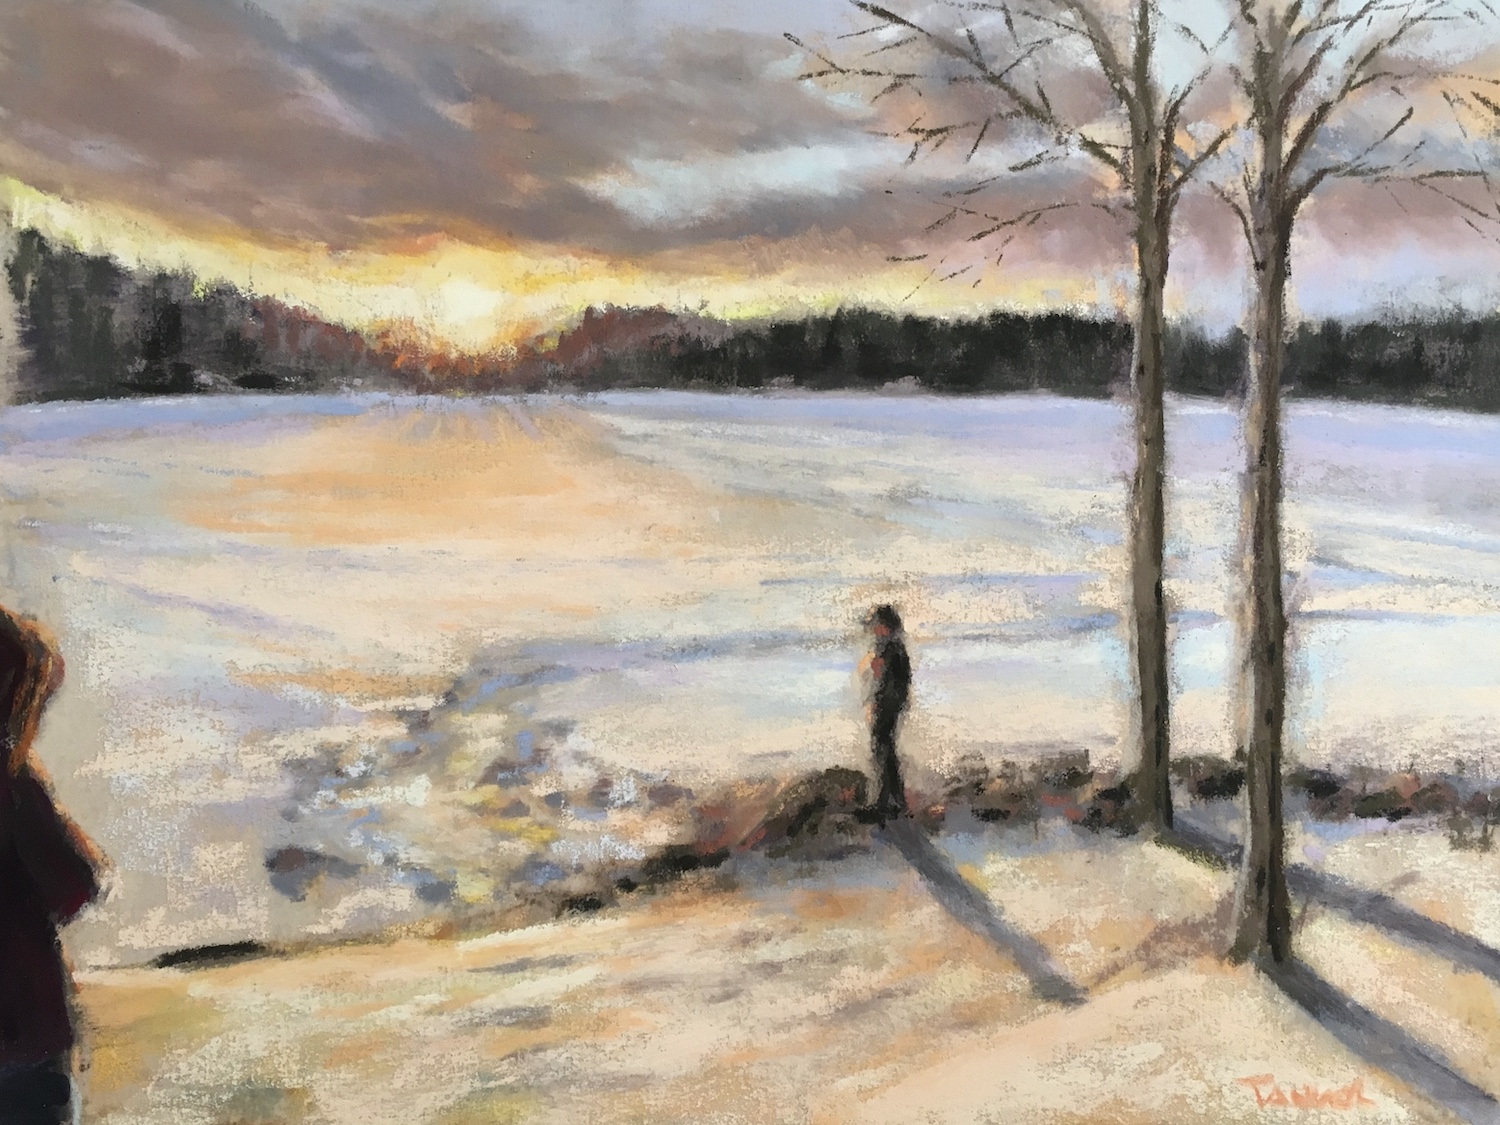 pastel of snow covered lake at sunset with figure